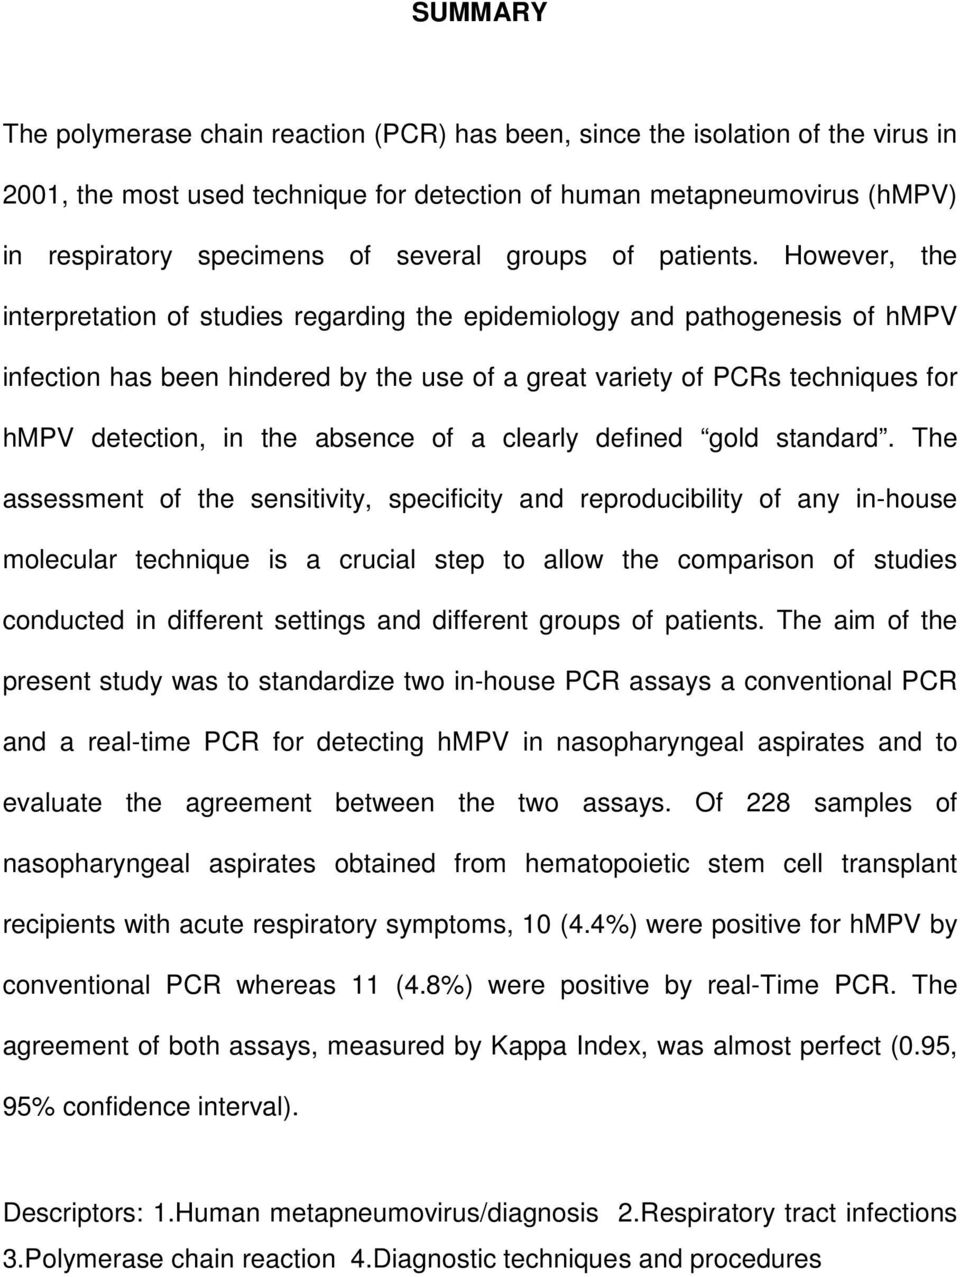 However, the interpretation of studies regarding the epidemiology and pathogenesis of hmpv infection has been hindered by the use of a great variety of PCRs techniques for hmpv detection, in the